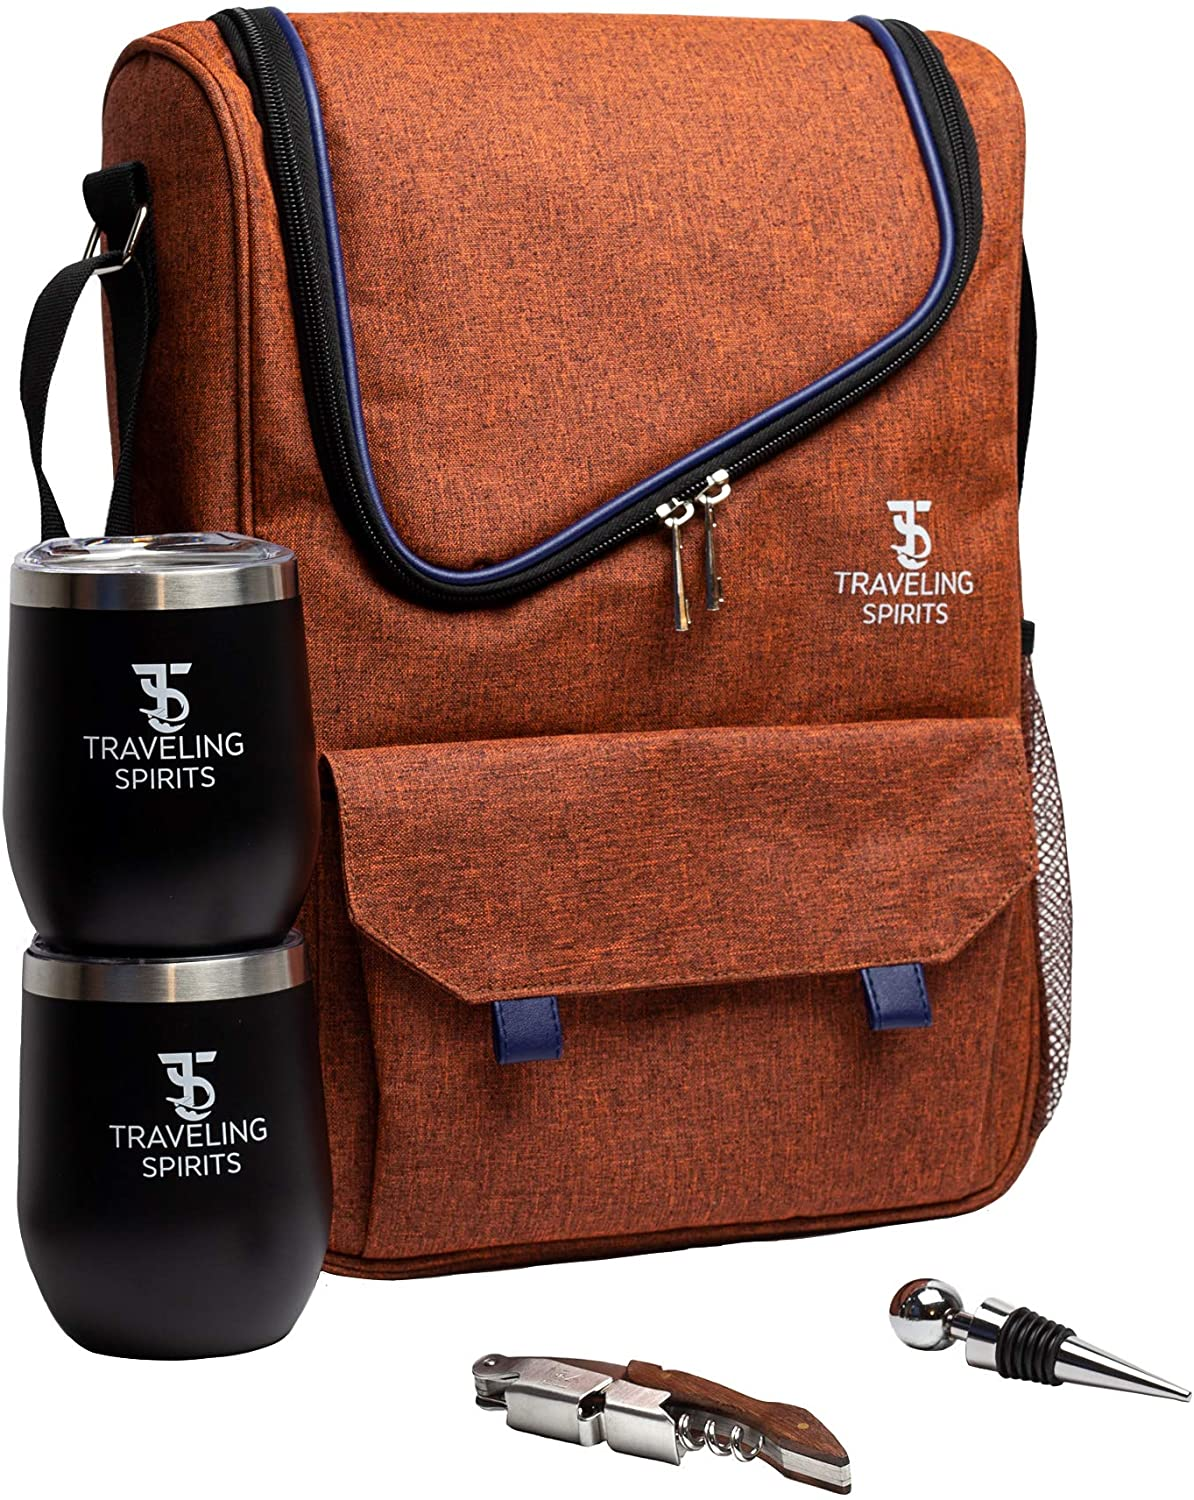 Traveling Spirits Insulated Wine Carrier   2 Bottle Wine Travel Bag with Stainless Steel Wine Tumblers   Wine Cooler Bag   Wine Tote for Travel, Wine Tasting, Party & More - Great Gift for Wine Lovers